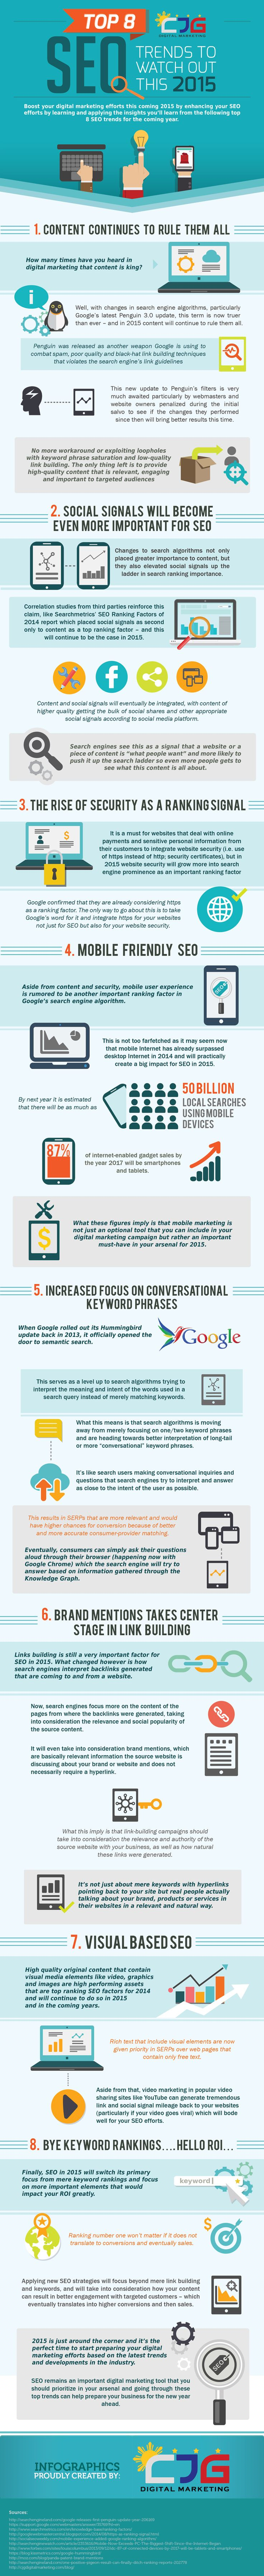 8 leading trends in search engine optimization! => http://imbasse.com/list-of-the-8-best-seo-trends-for-2015-infographic/ #infographic #marketing #business #seo #searchengineoptimization